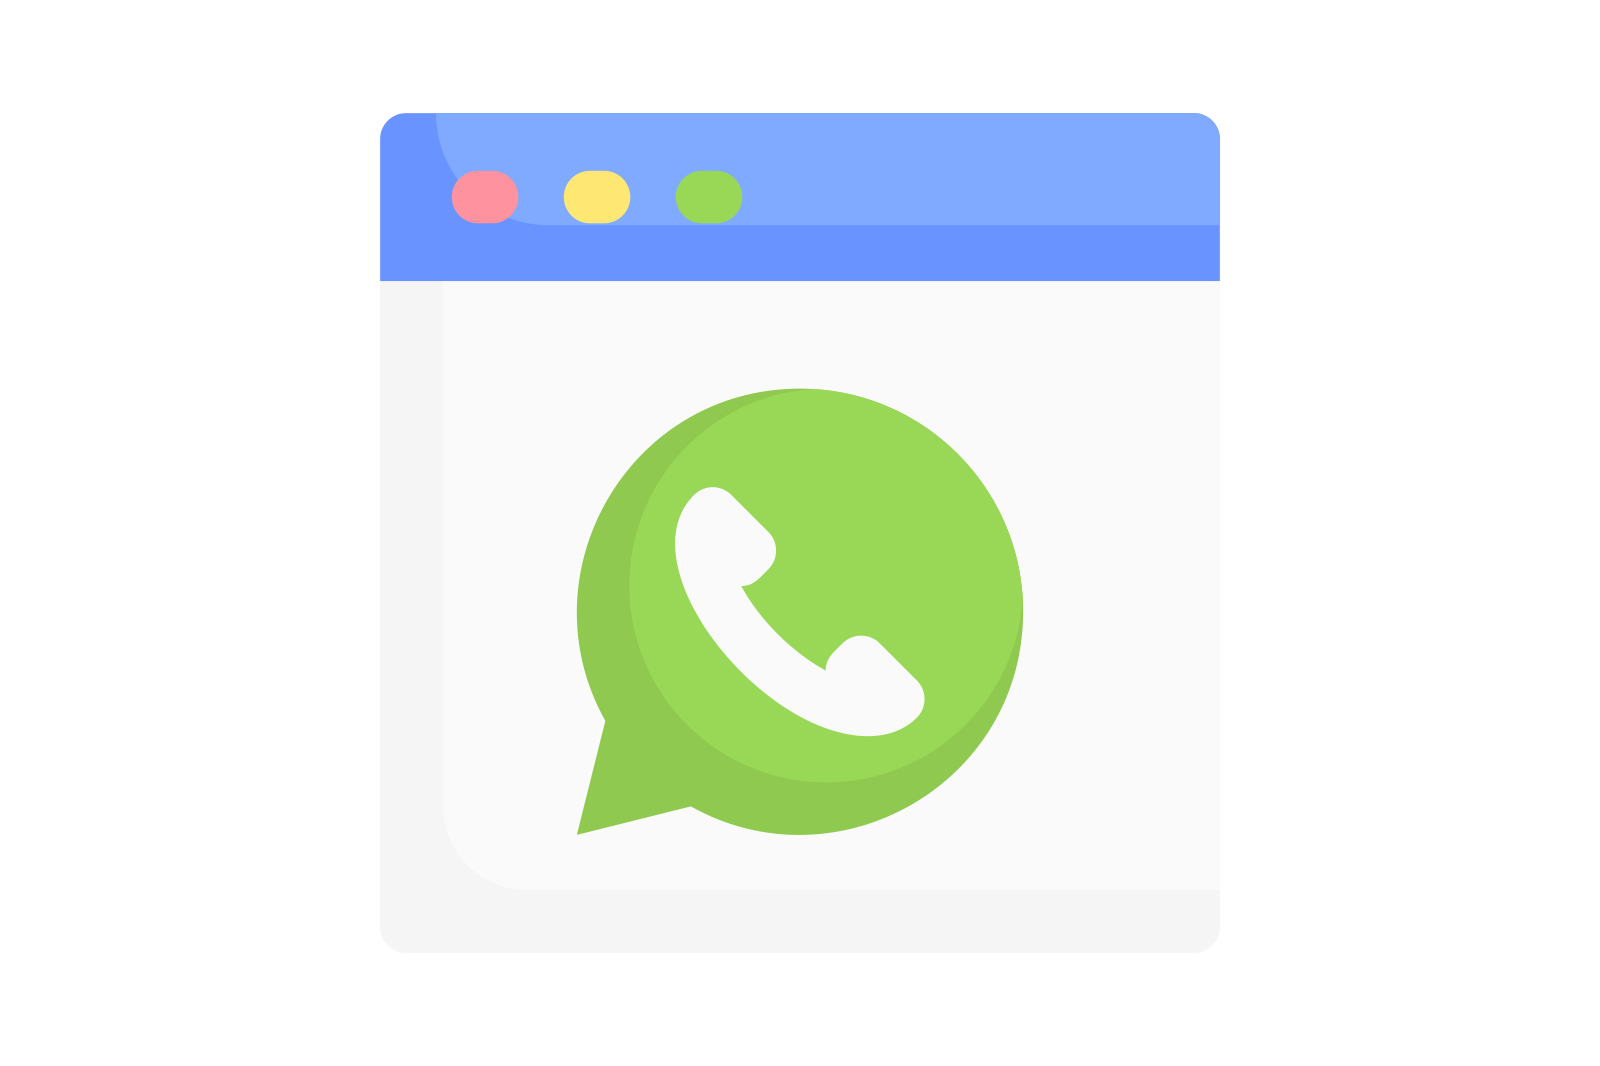 Delivery integrado com Whatsapp